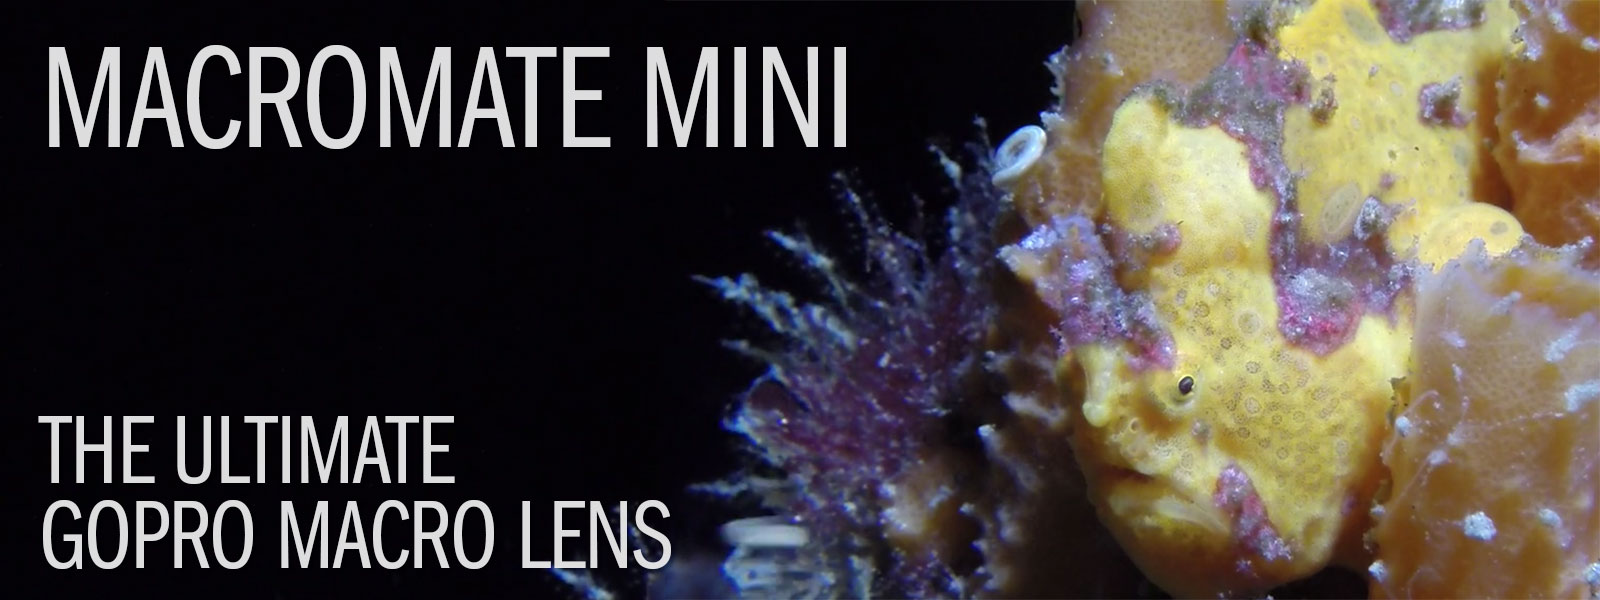 MACROMATE MINI - The Ultimate GoPro Macro Lens